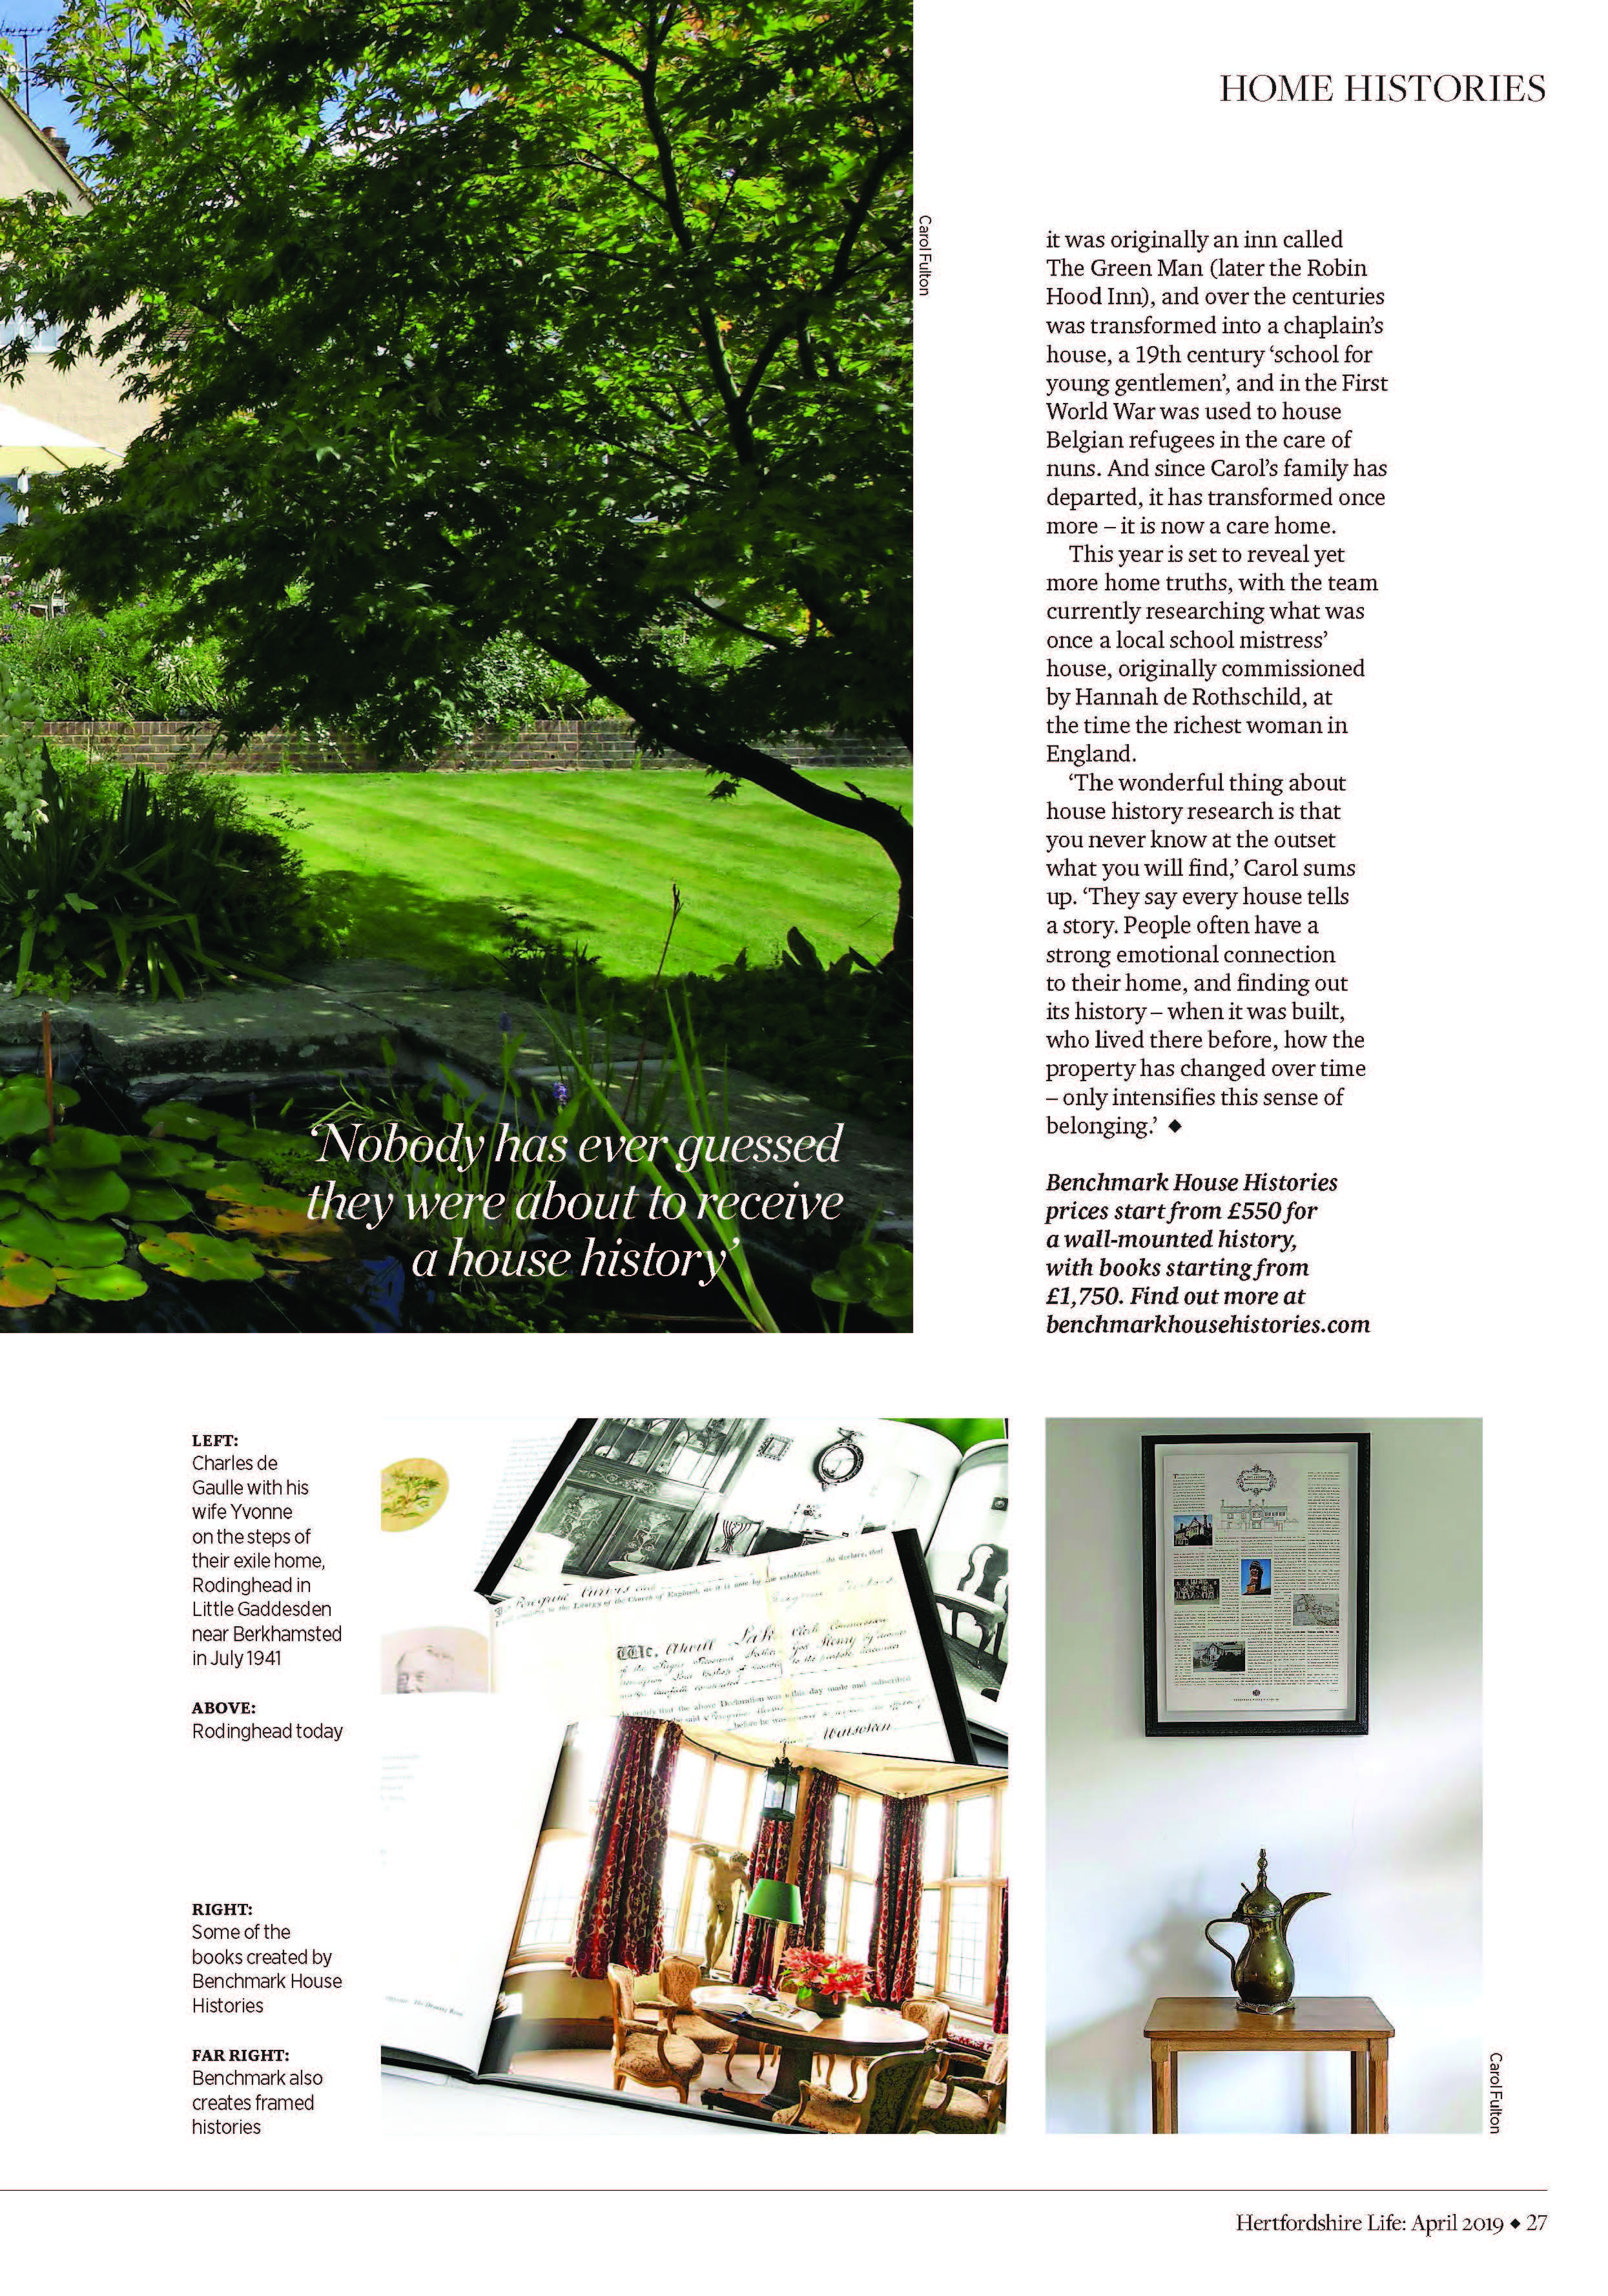 HERTFORDSHIRE_LIFE_magazine_article_April_2019_PRESS_QUALITY_PDF_Page_5.jpg